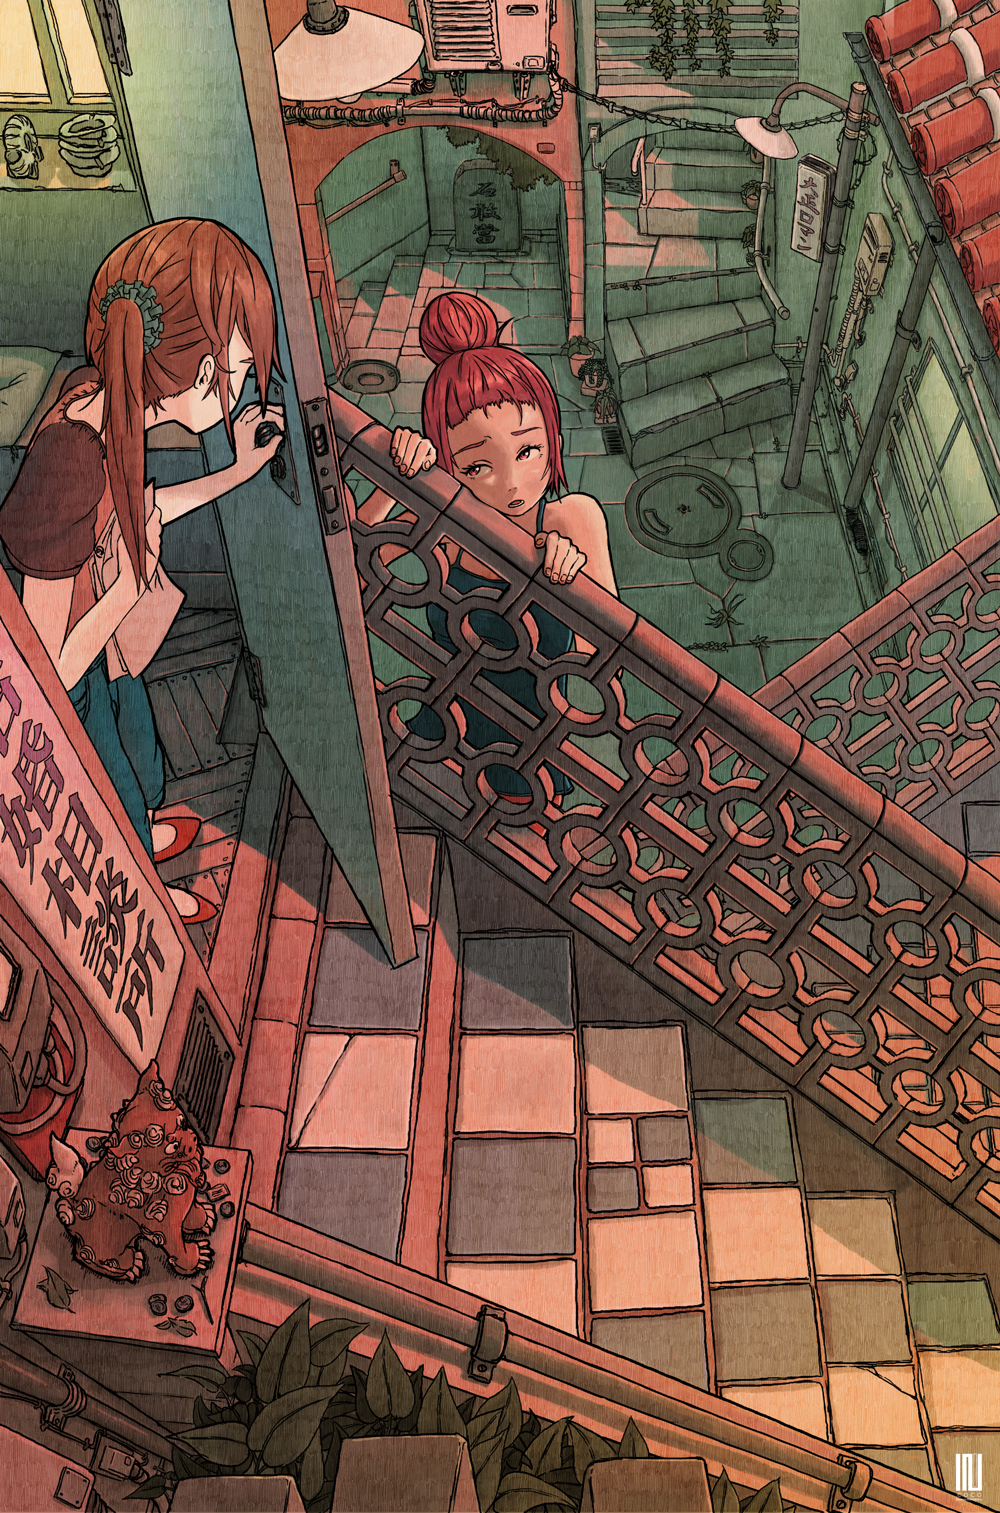 2girls ashtray black_tank_top brown_hair building commentary_request denim from_above hair_bun highres holding inukoko jeans lamppost looking_at_another multiple_girls open_door open_mouth original outdoors pants pink_eyes plant potted_plant railing red_footwear red_shirt redhead shirt short_sleeves side_ponytail sign stairs statue window